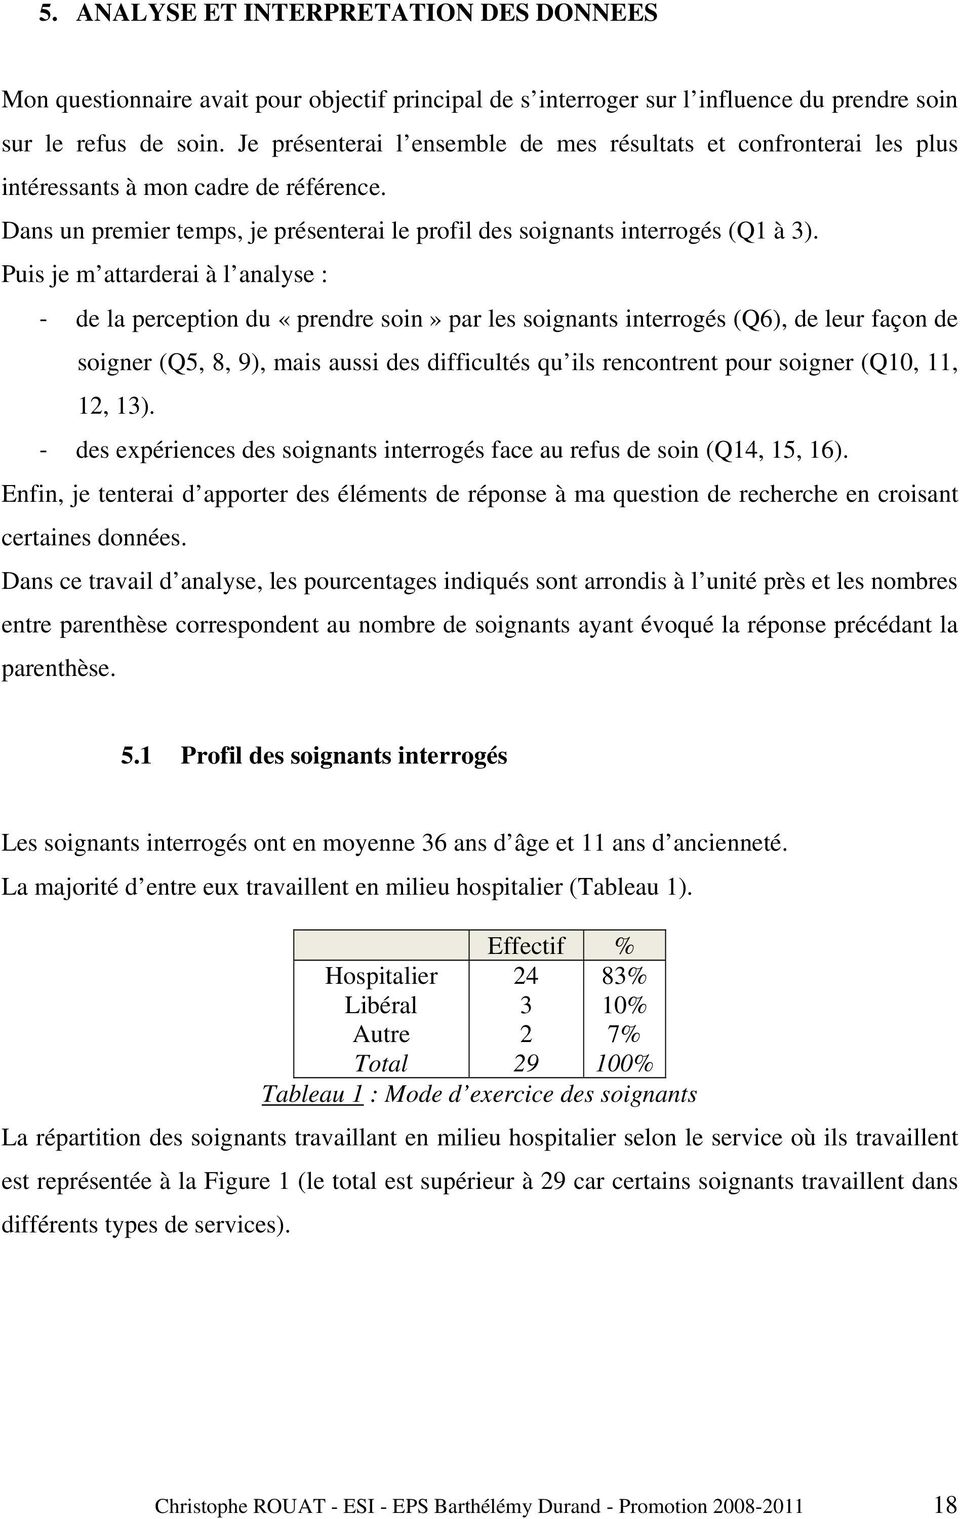 Puis je m attarderai à l analyse : de la perception du «prendre soin» par les soignants interrogés (Q6), de leur façon de soigner (Q5, 8, 9), mais aussi des difficultés qu ils rencontrent pour